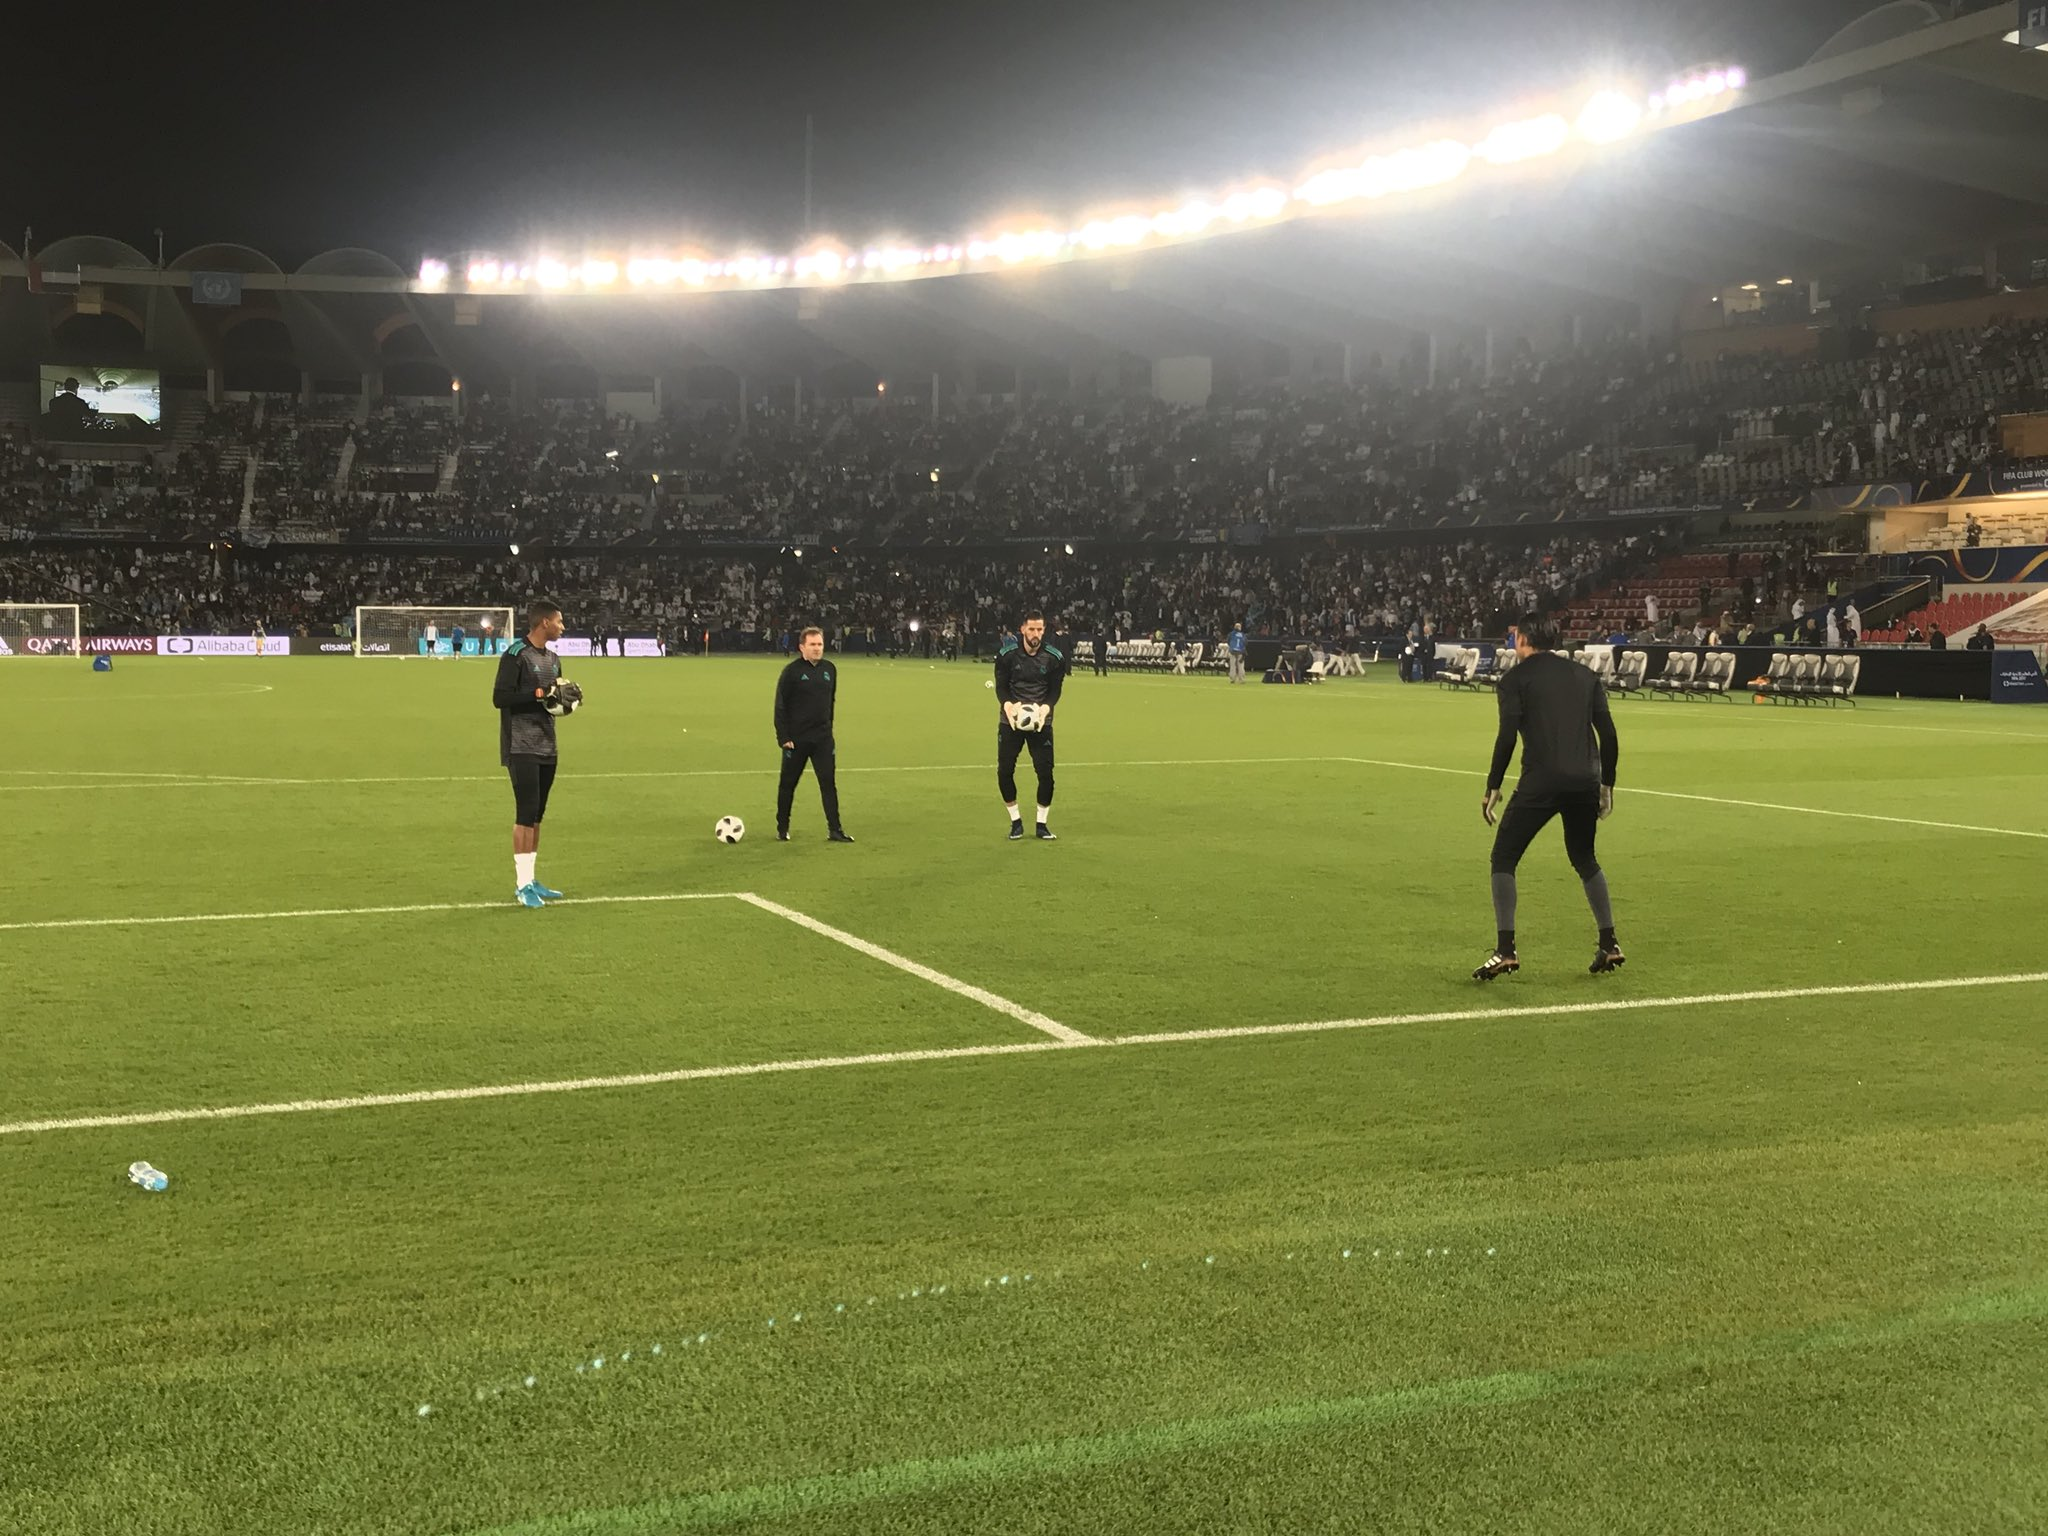 Our goalkeepers are out for the warm-up! ����  #RMCWC | #HalaMadrid https://t.co/A08IMMP5uM